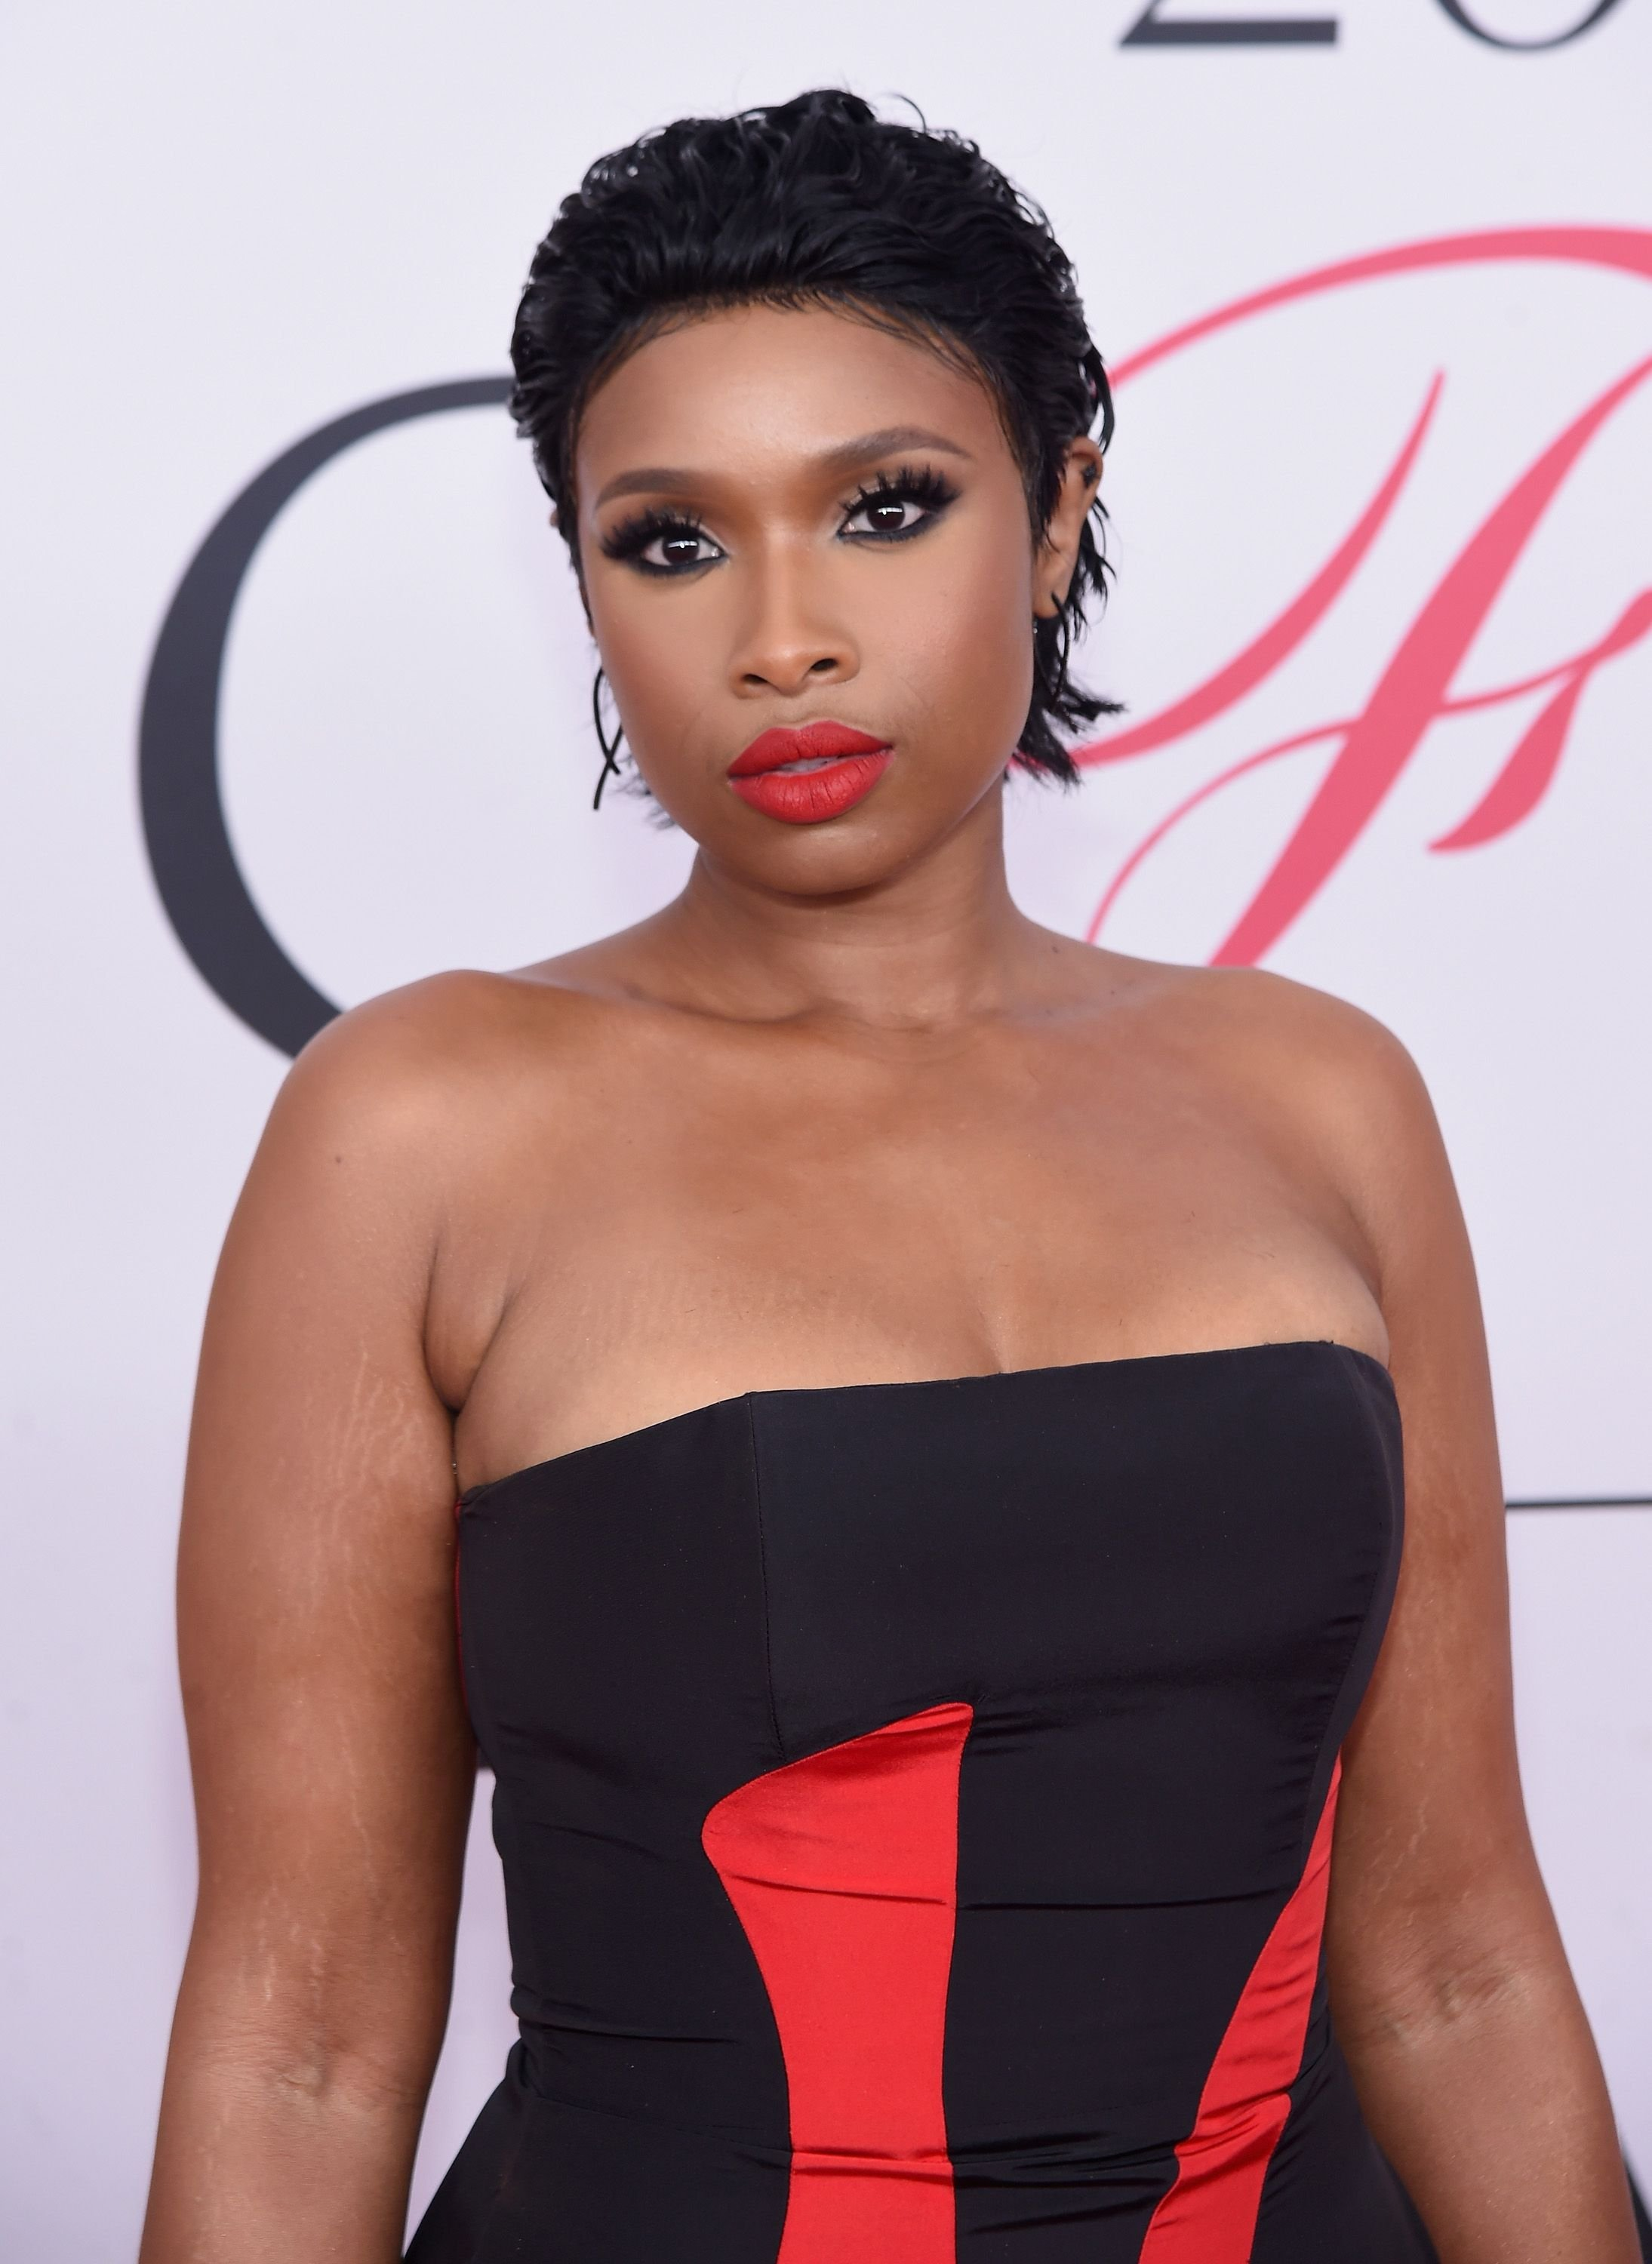 Jennifer Hudson at the CFDA Fashion Awards on June 6, 2016 in New York. | Photo: Getty Images